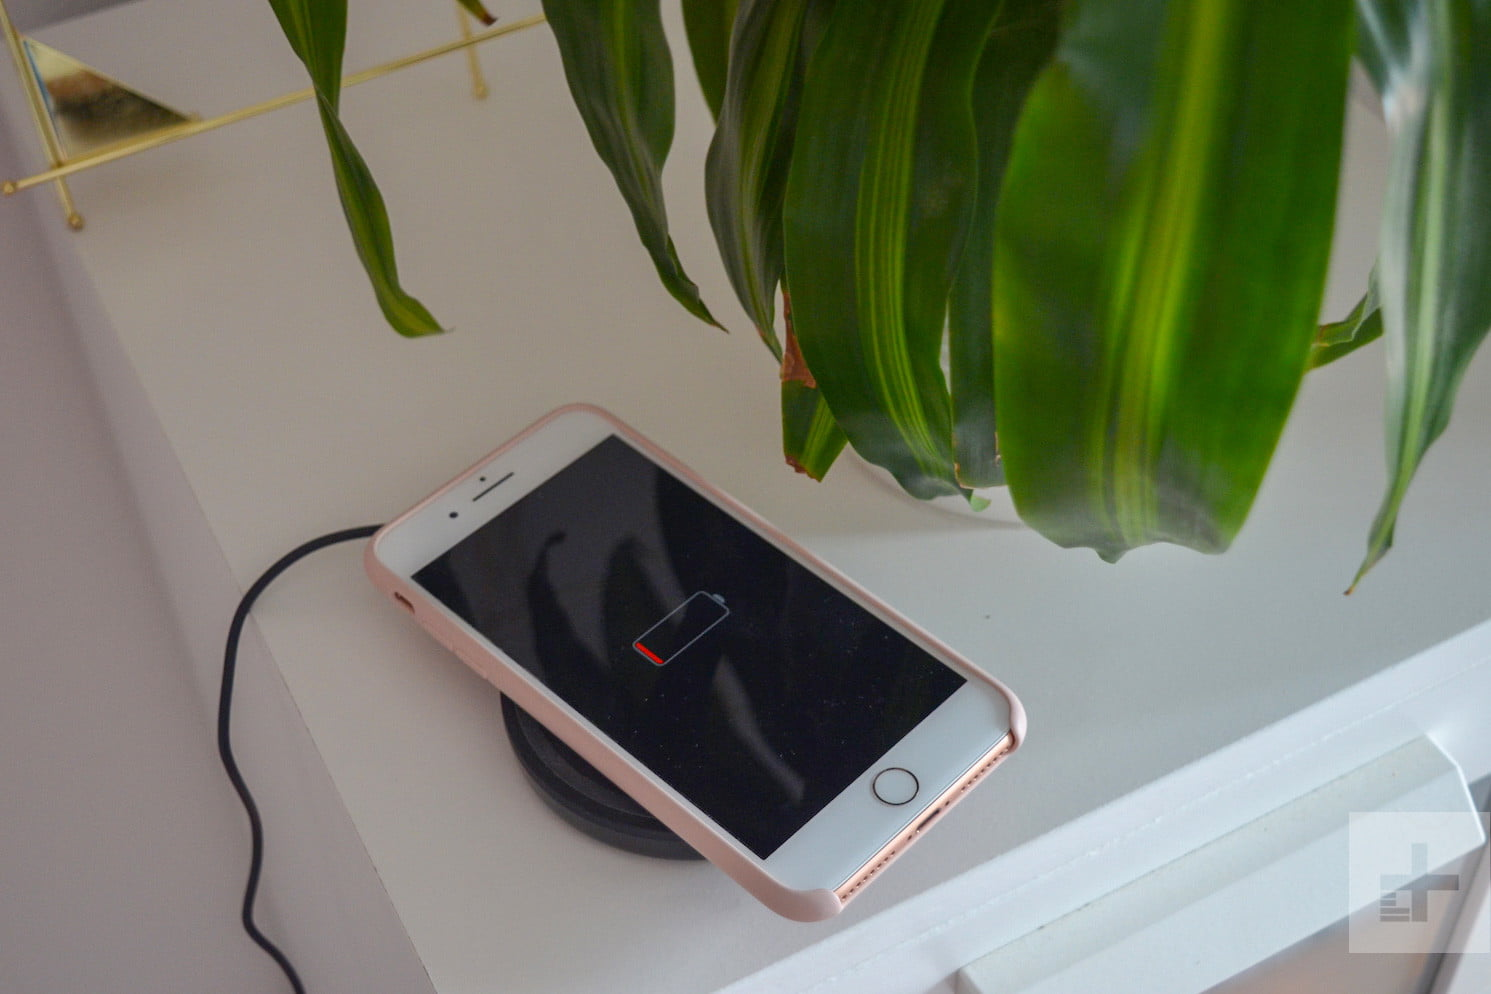 Mophie Vs Belkin Vs Anker Vs Iottie Finding The Best Wireless Charging Pad For Iphones Wireless charging has been around for years, but apple only recently added the technology. yahoo